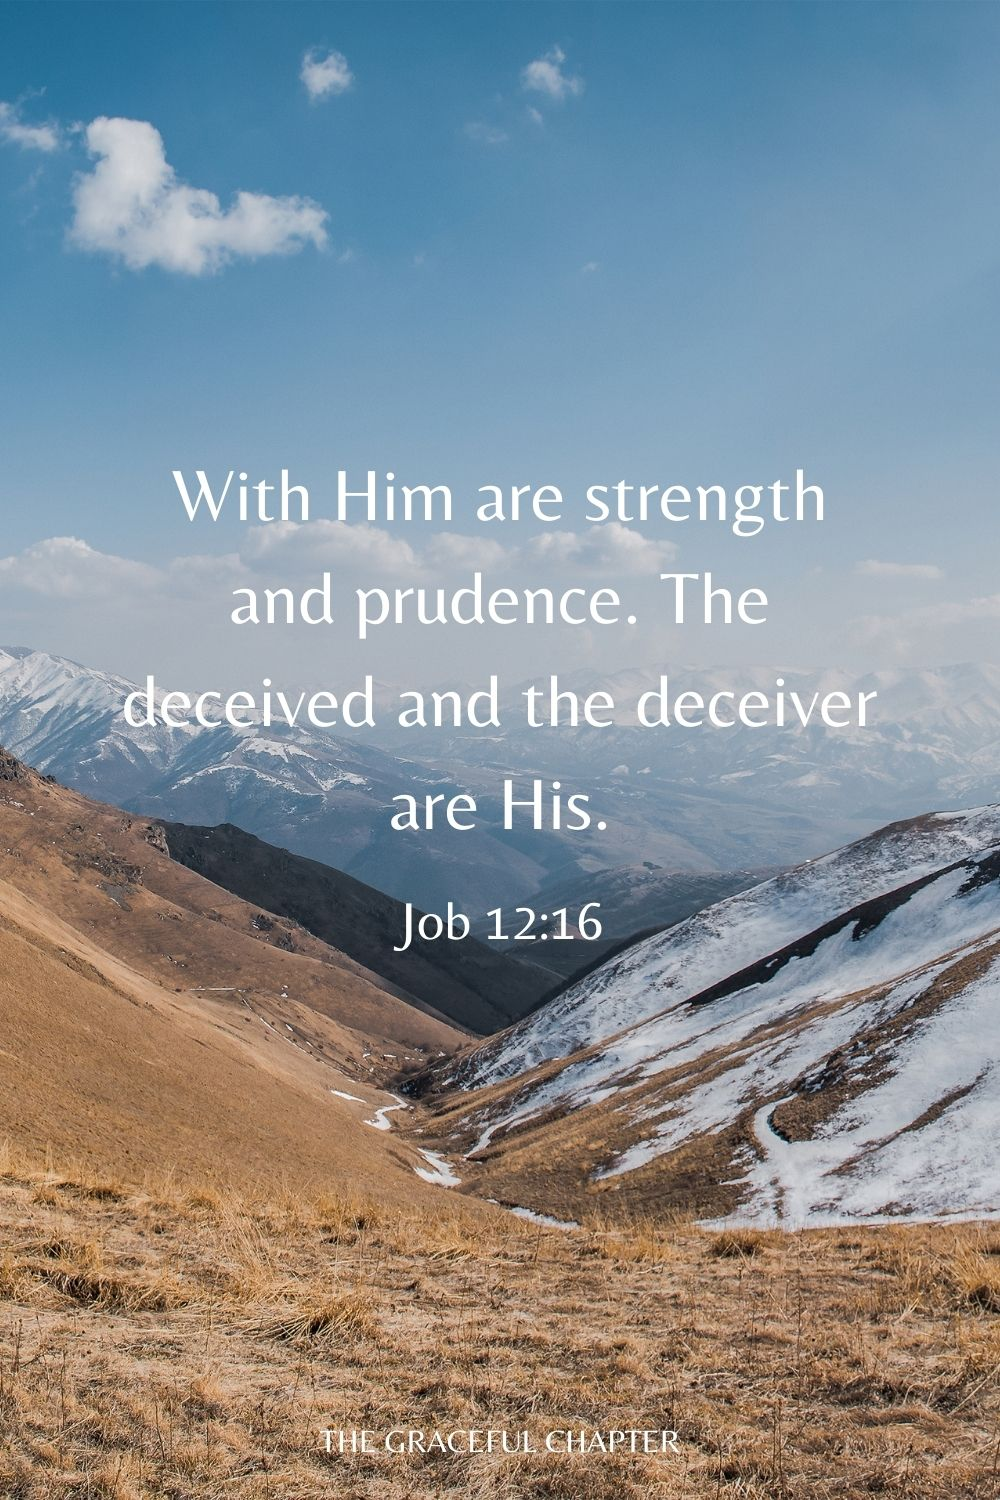 With Him are strength and prudence. The deceived and the deceiver are His. Job 12:16